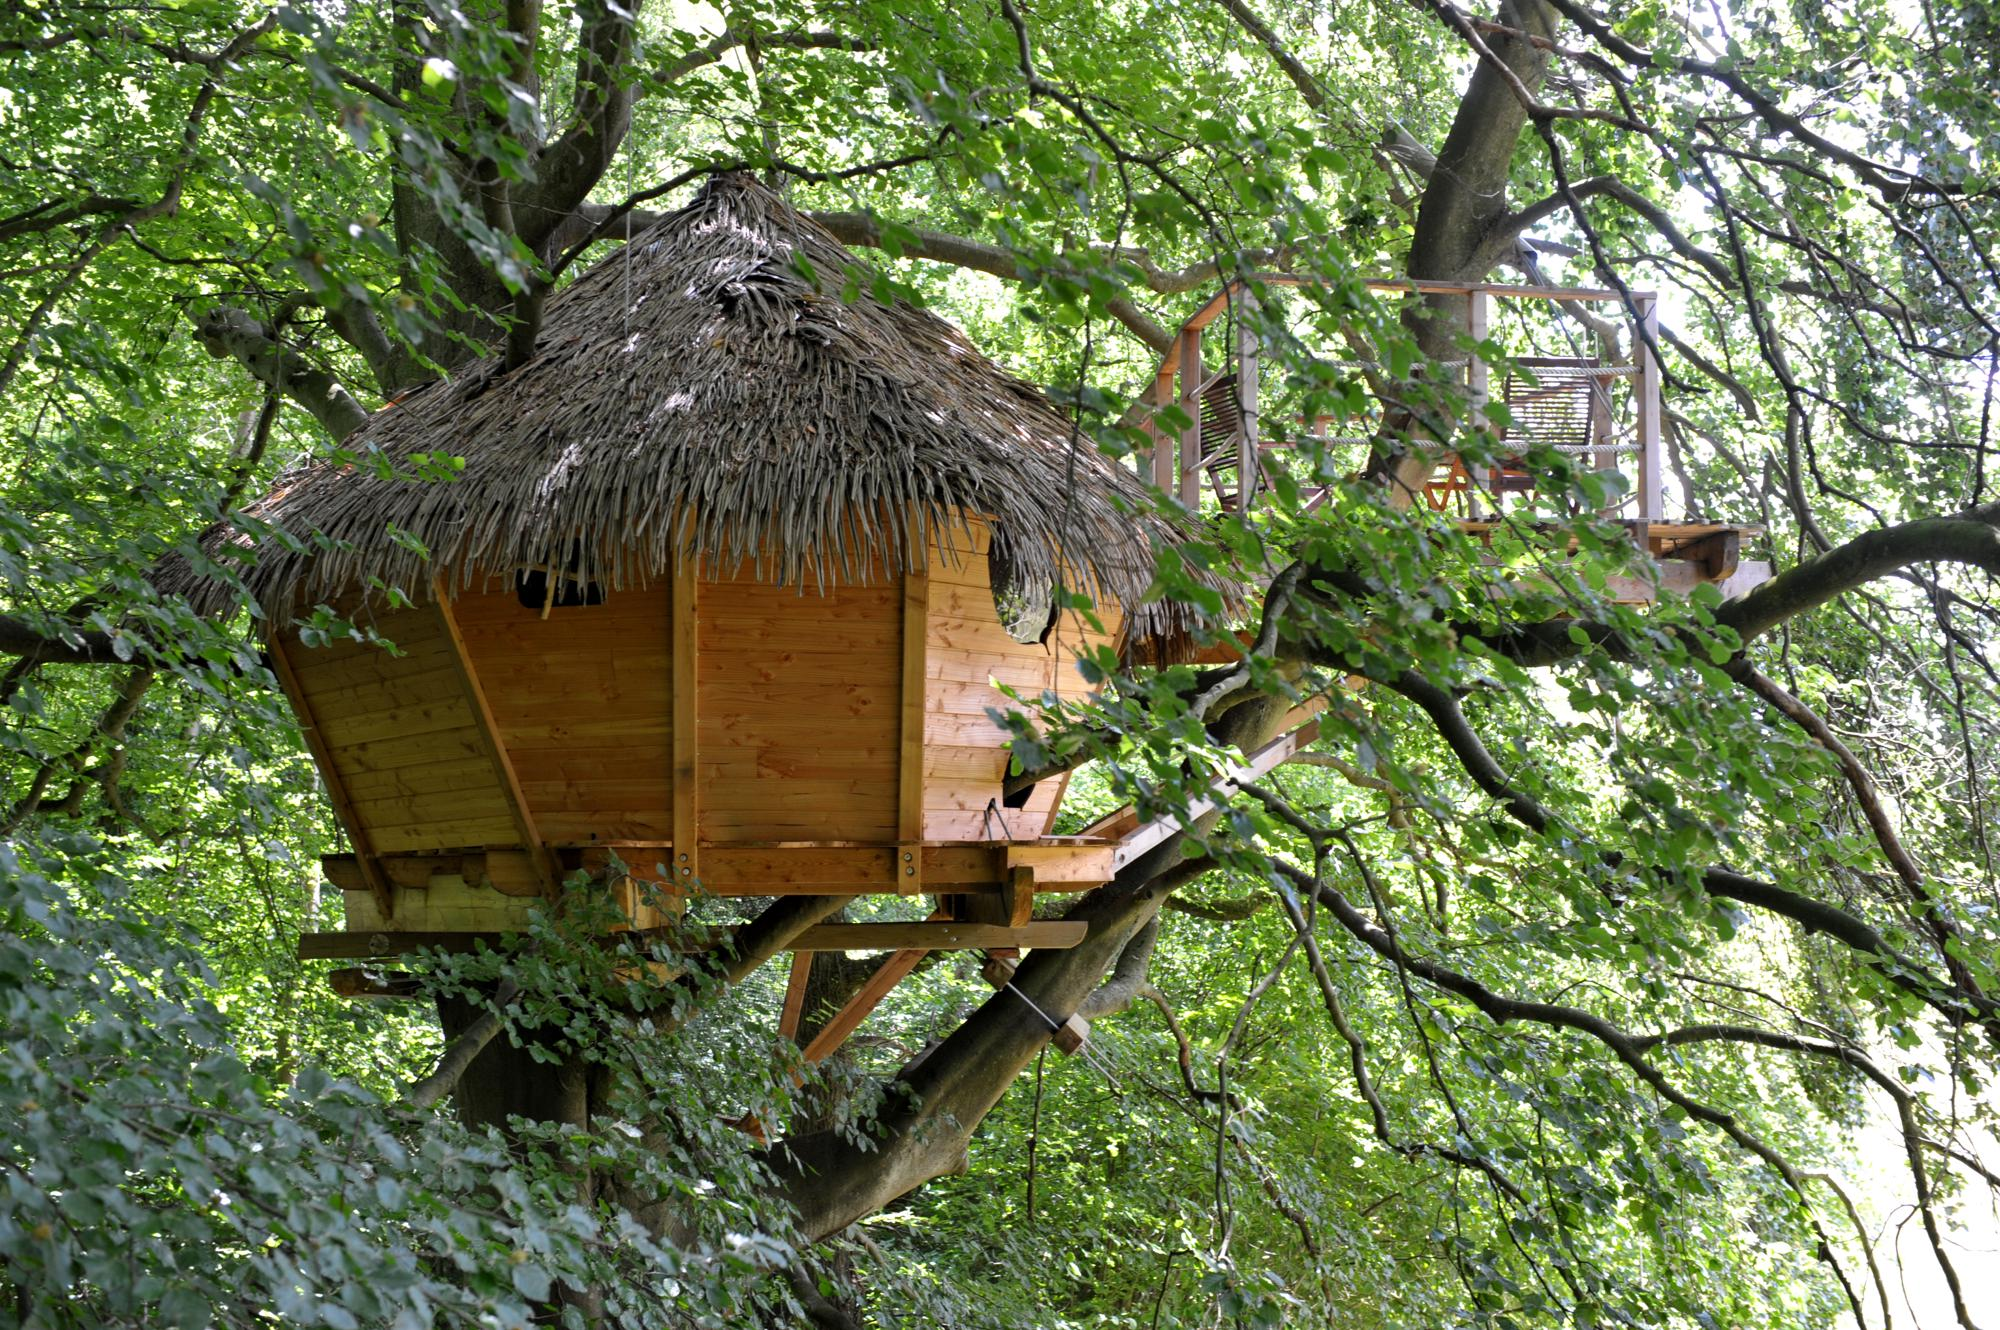 Glamping in Tree house holidays at Cool Camping